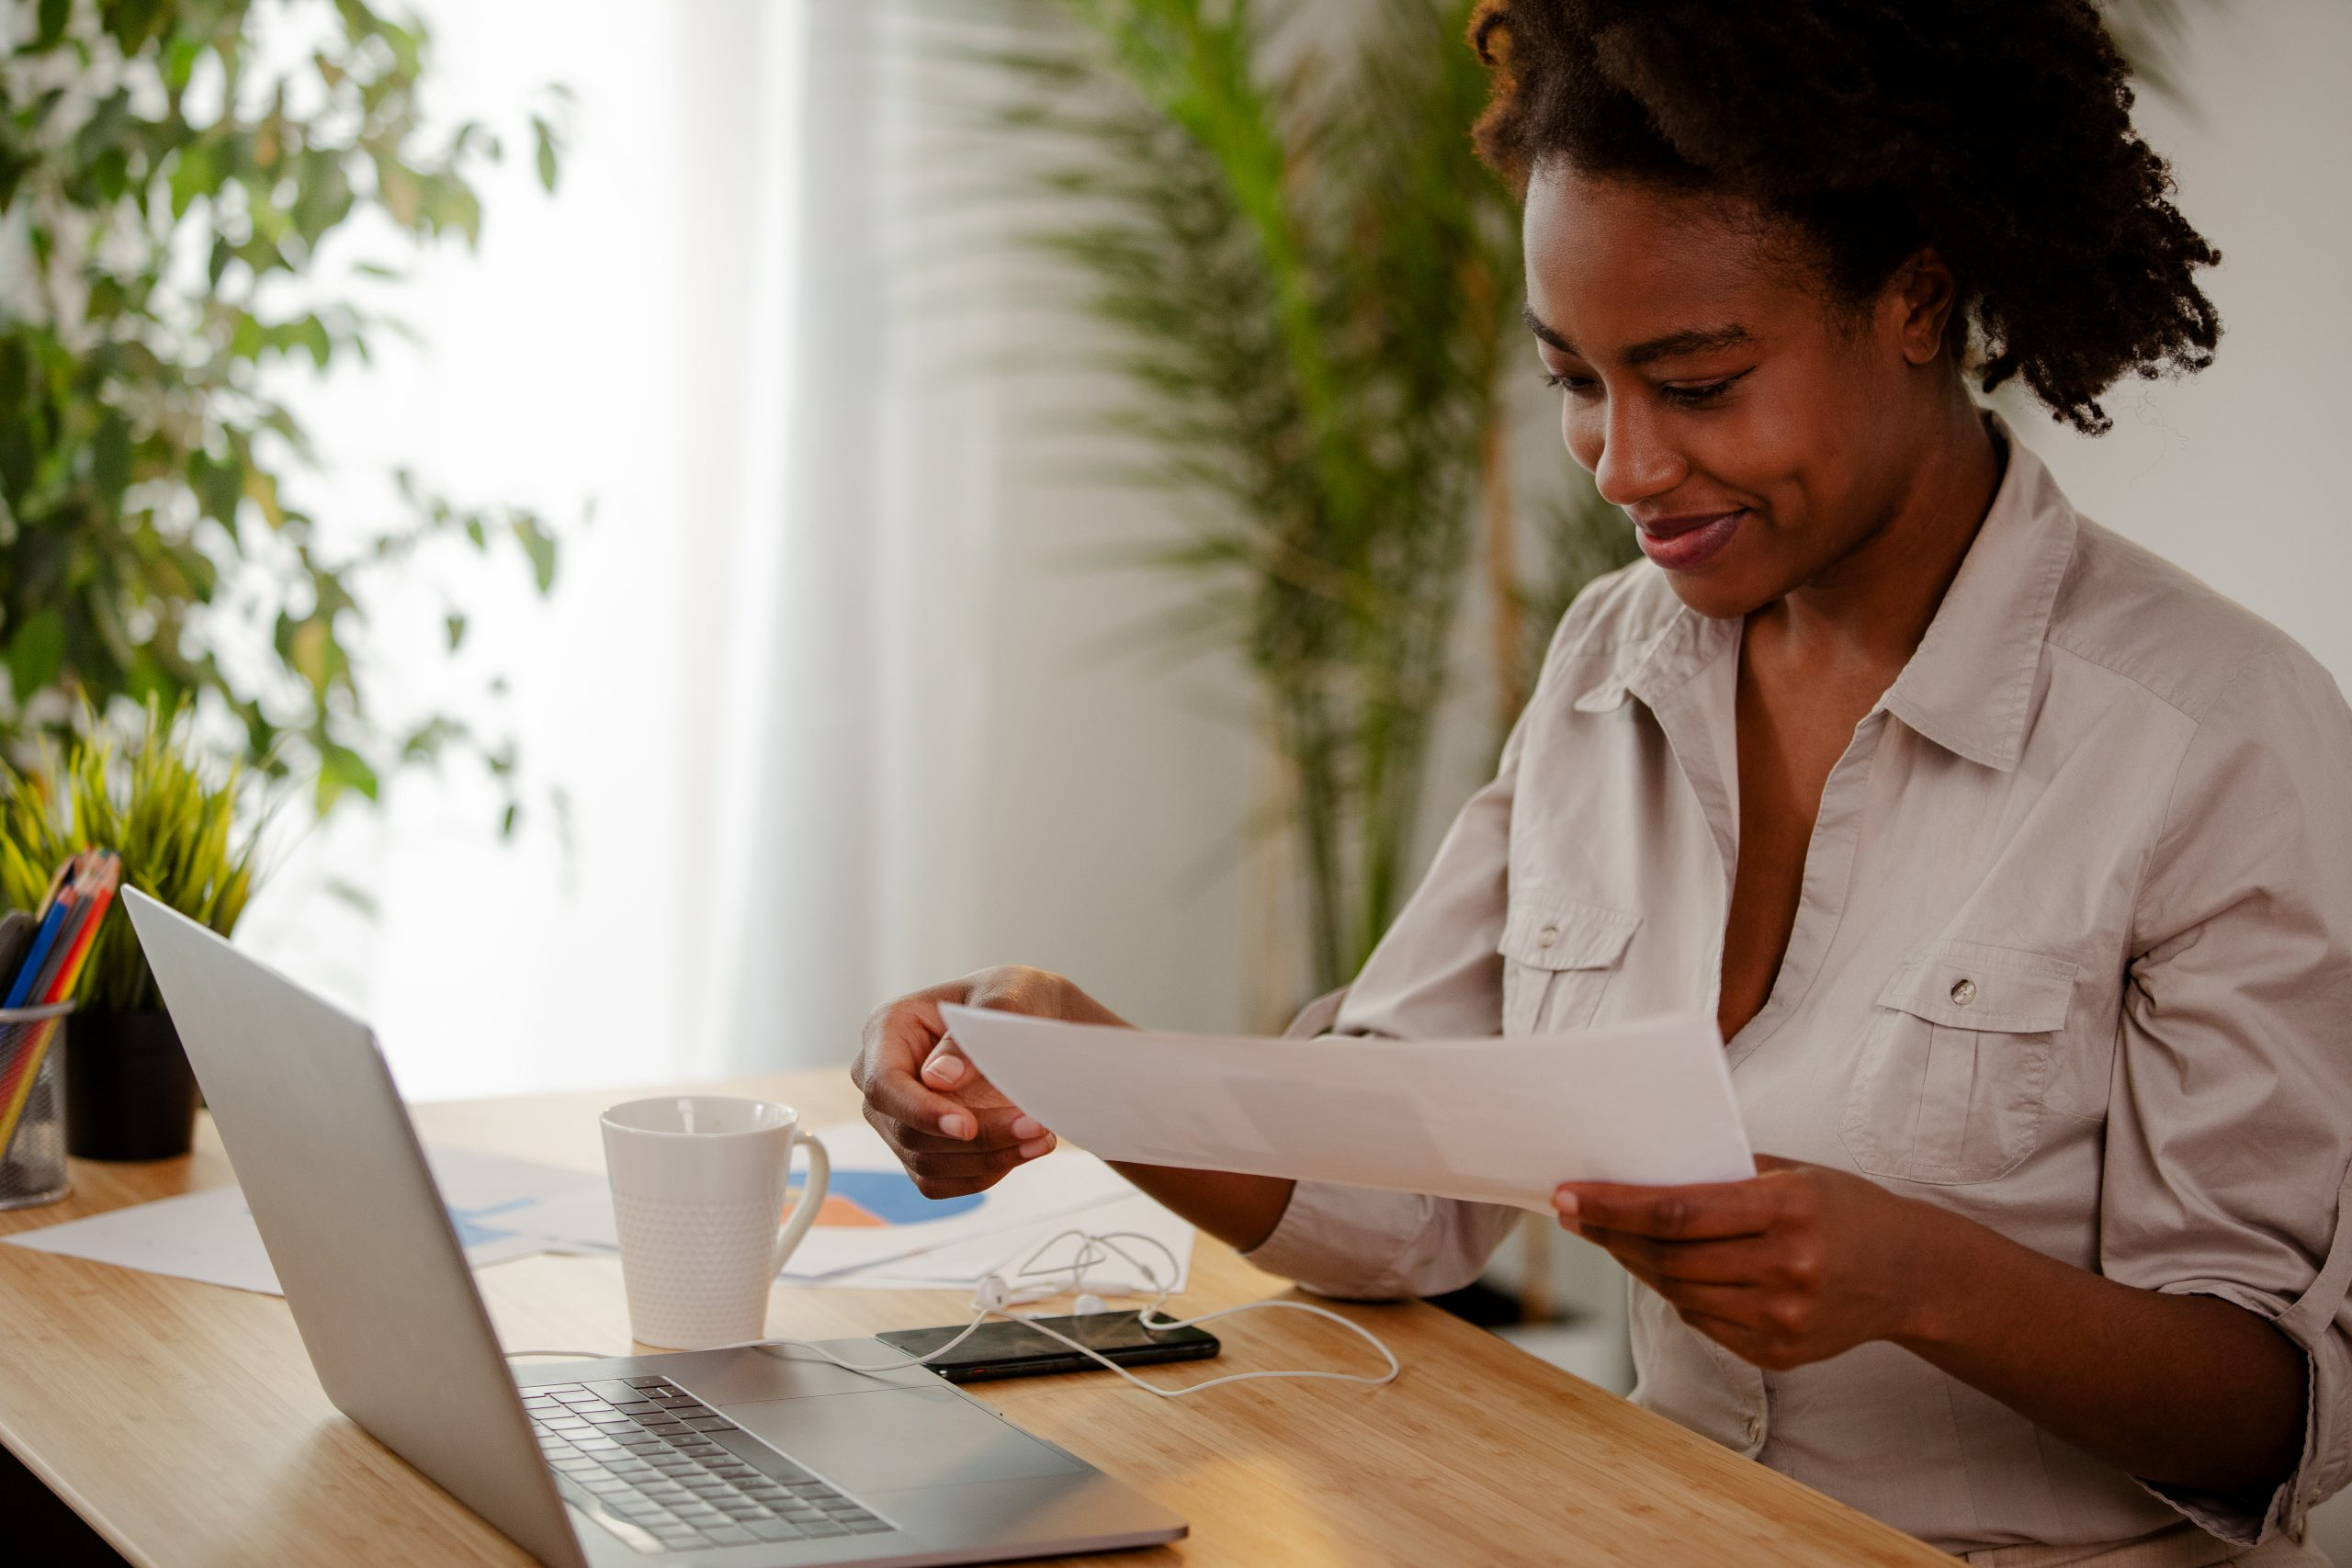 Smiling Afro American businesswoman working from home, drinking a coffee and holding some papers.